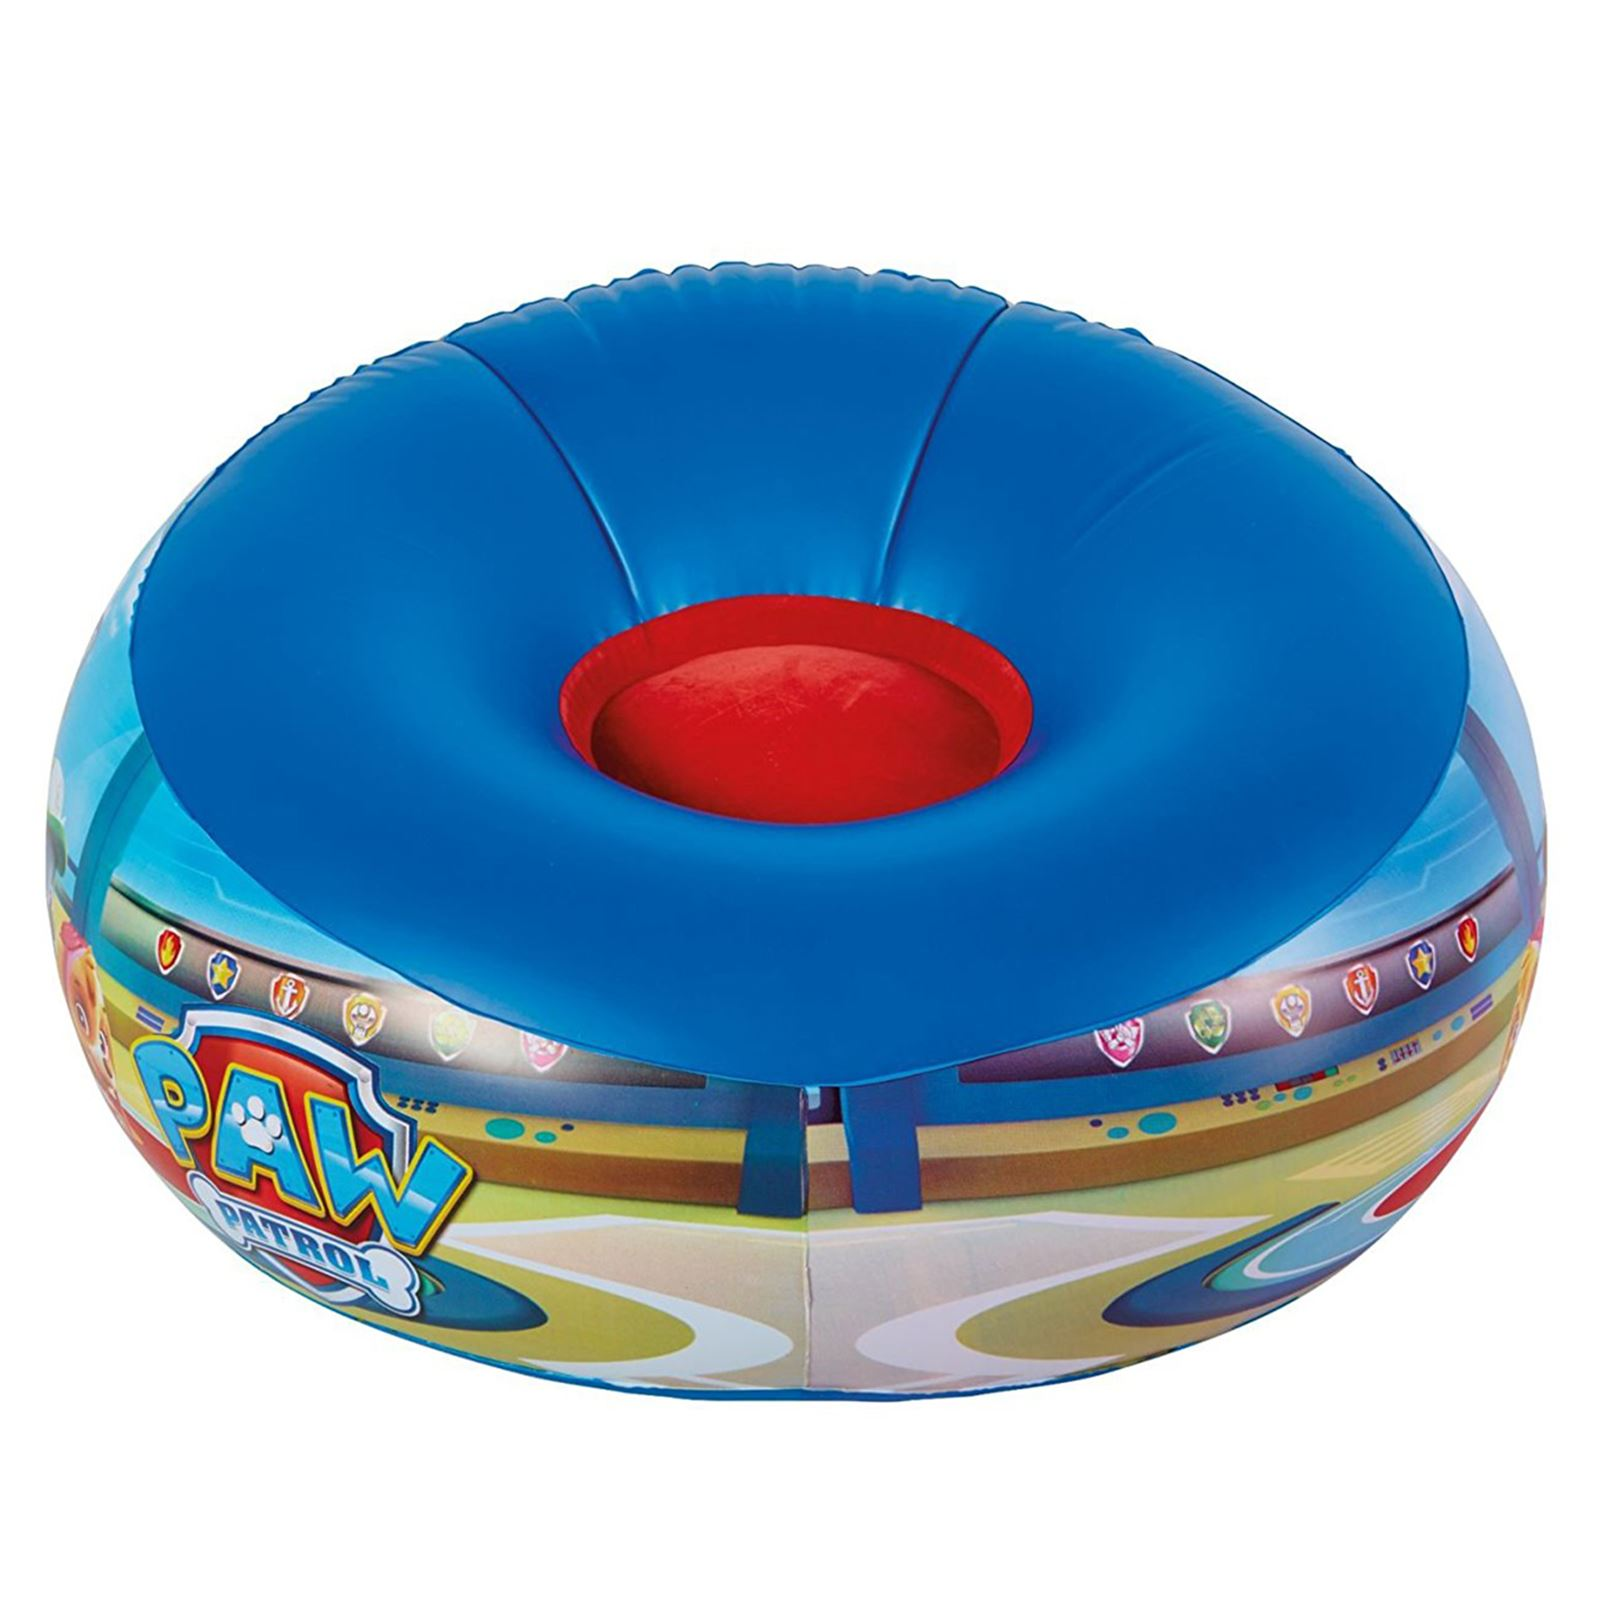 inflatable furniture. PAW PATROL INFLATABLE CHAIR KIDS CHILDRENS BOYS JUNIOR FURNITURE FREE P+P Inflatable Furniture L